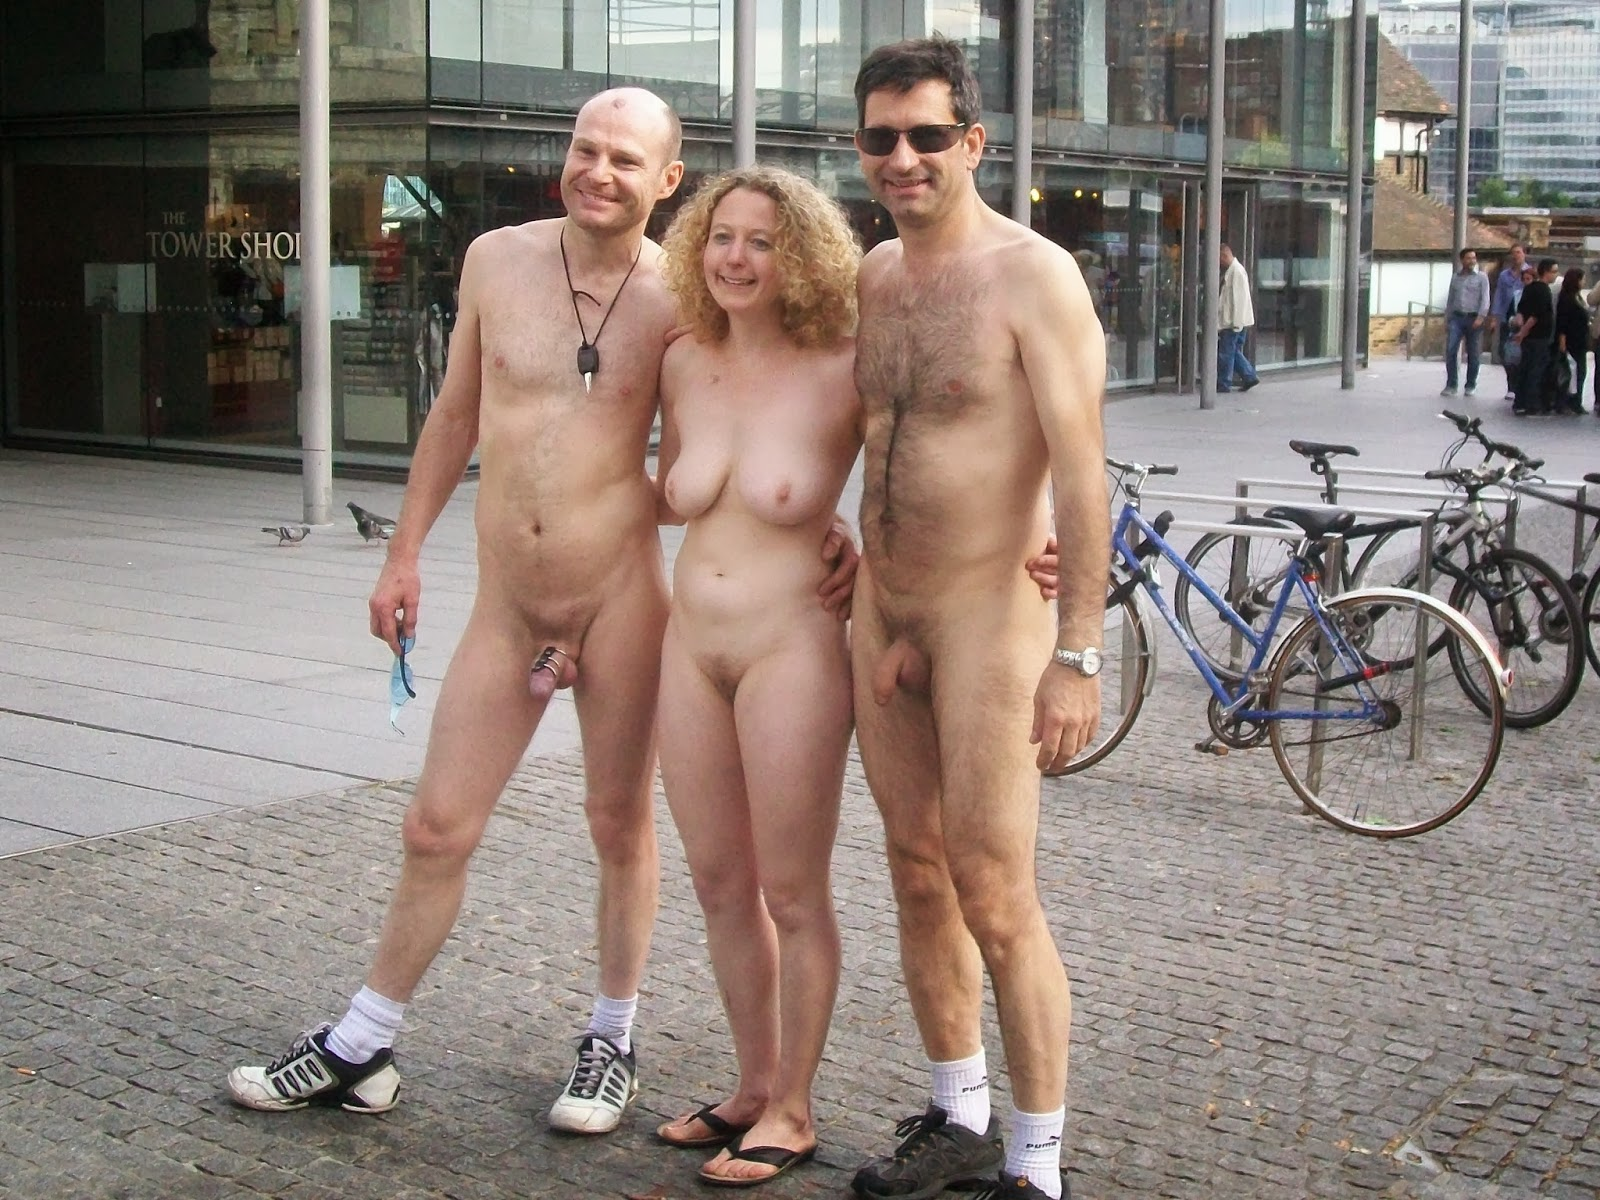 Deliciousdeity: More of the world naked bike ride